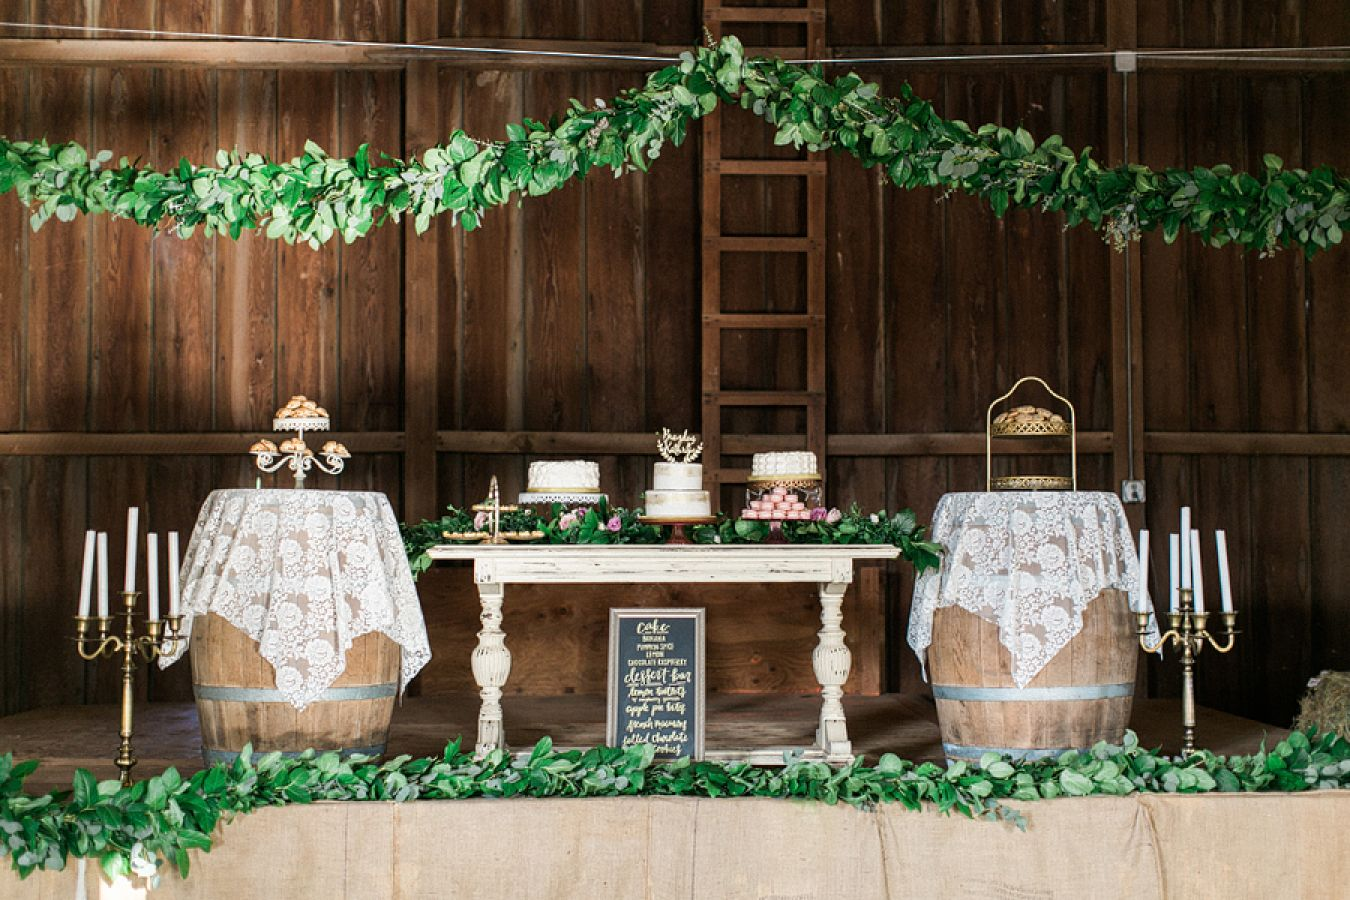 How to Throw an Exquisite Rustic Wedding Image 4